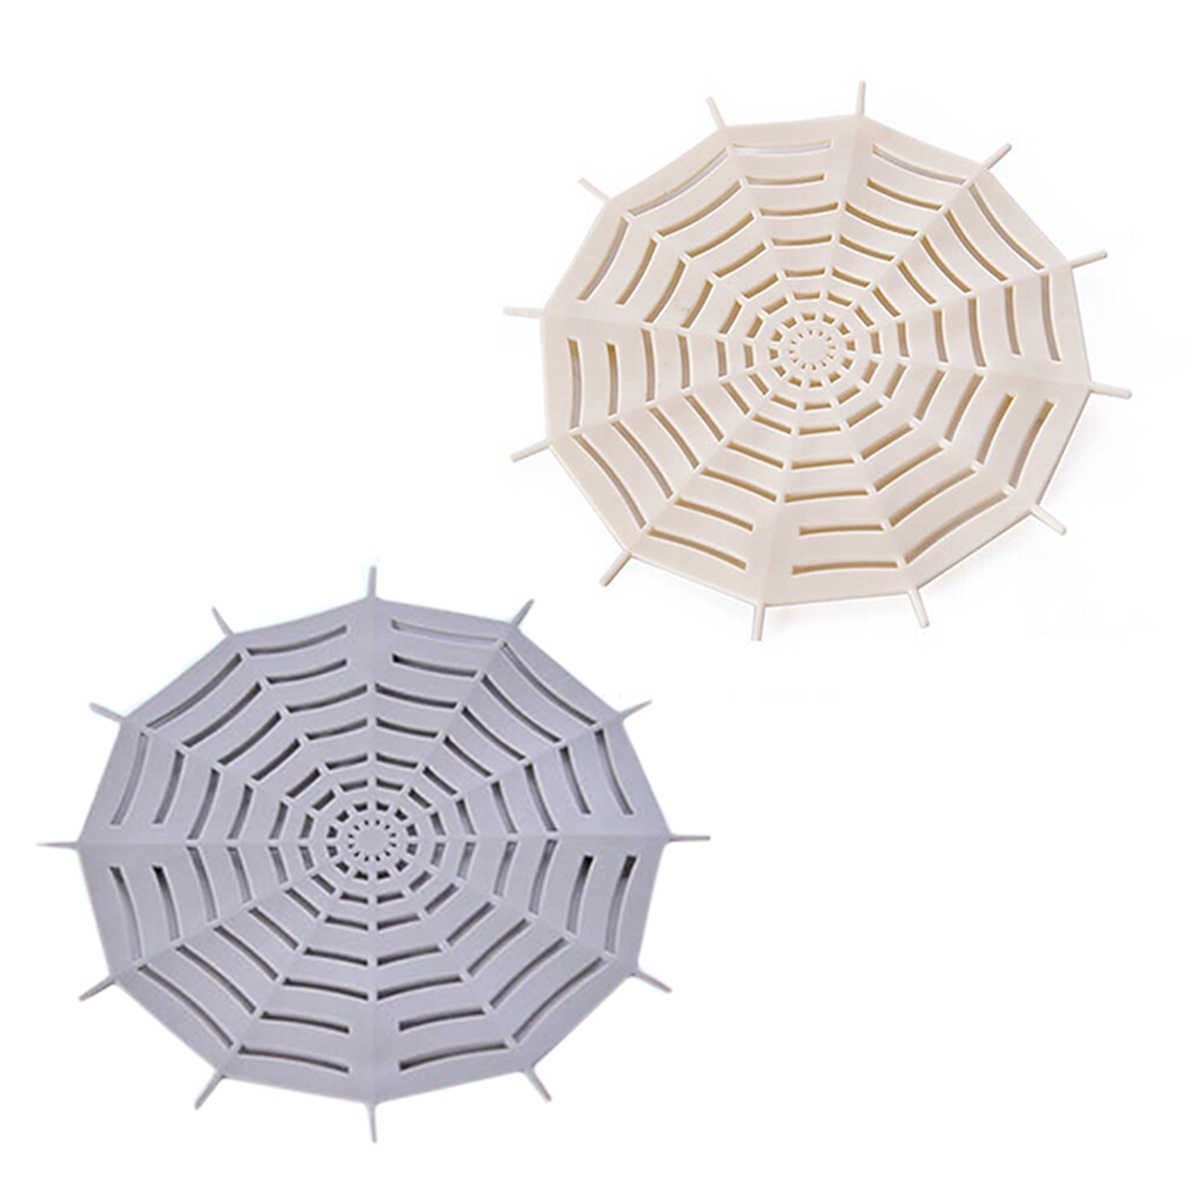 2 PCS Spider Web Sink Strainer Bathroom Kitchen Drainer Filter Hair Stopper Basin Filter with Suckers (Beige+Grey)